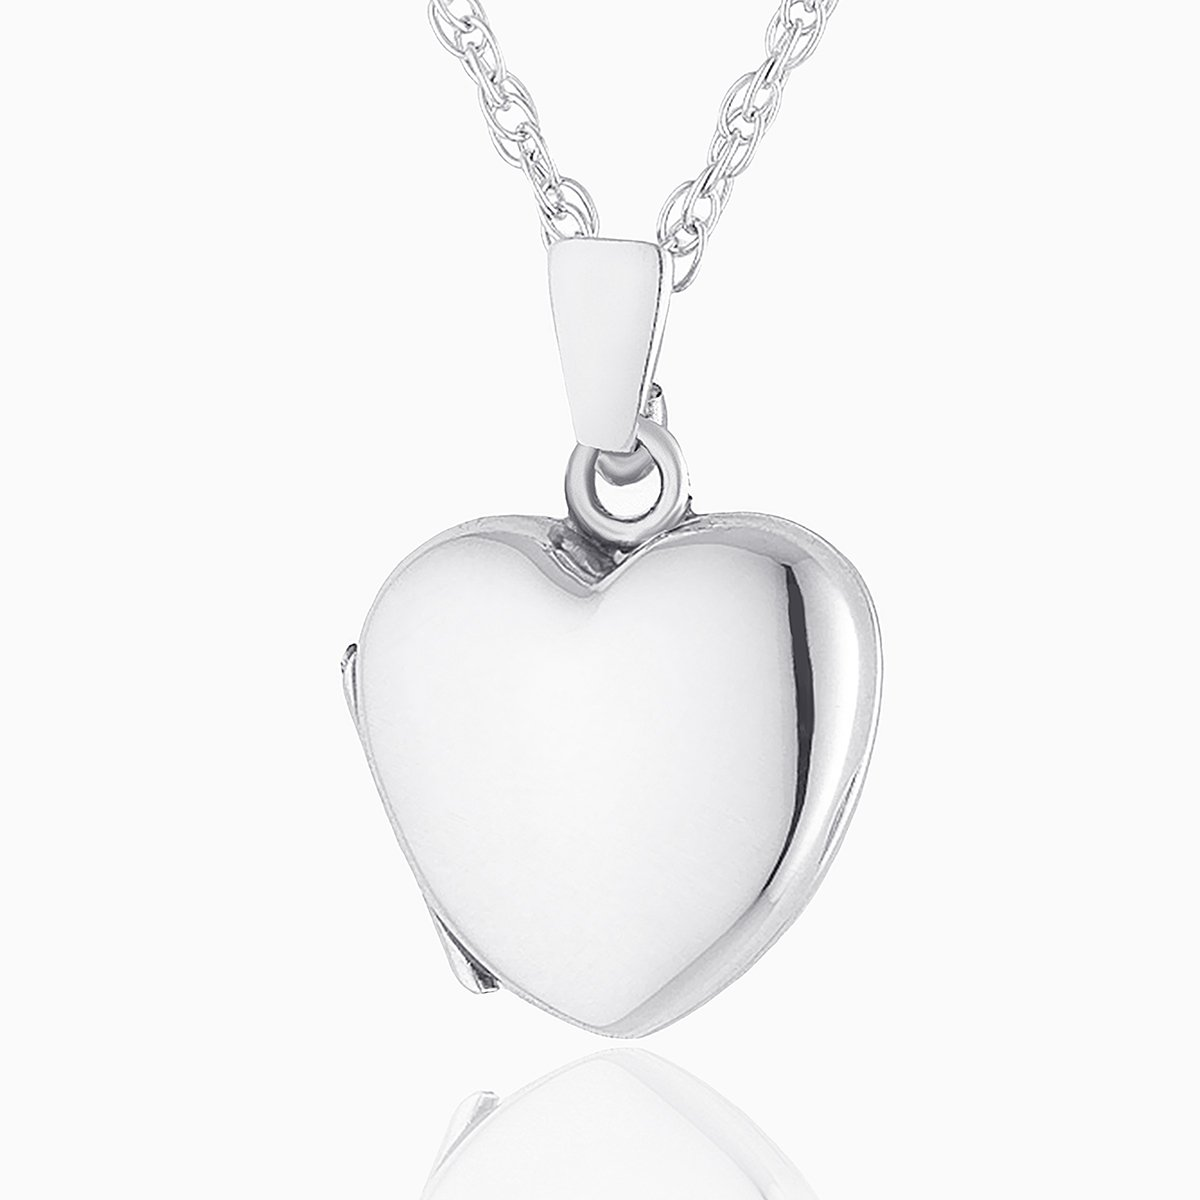 Product title: Hand Polished White Gold Petite Heart, product type: Locket